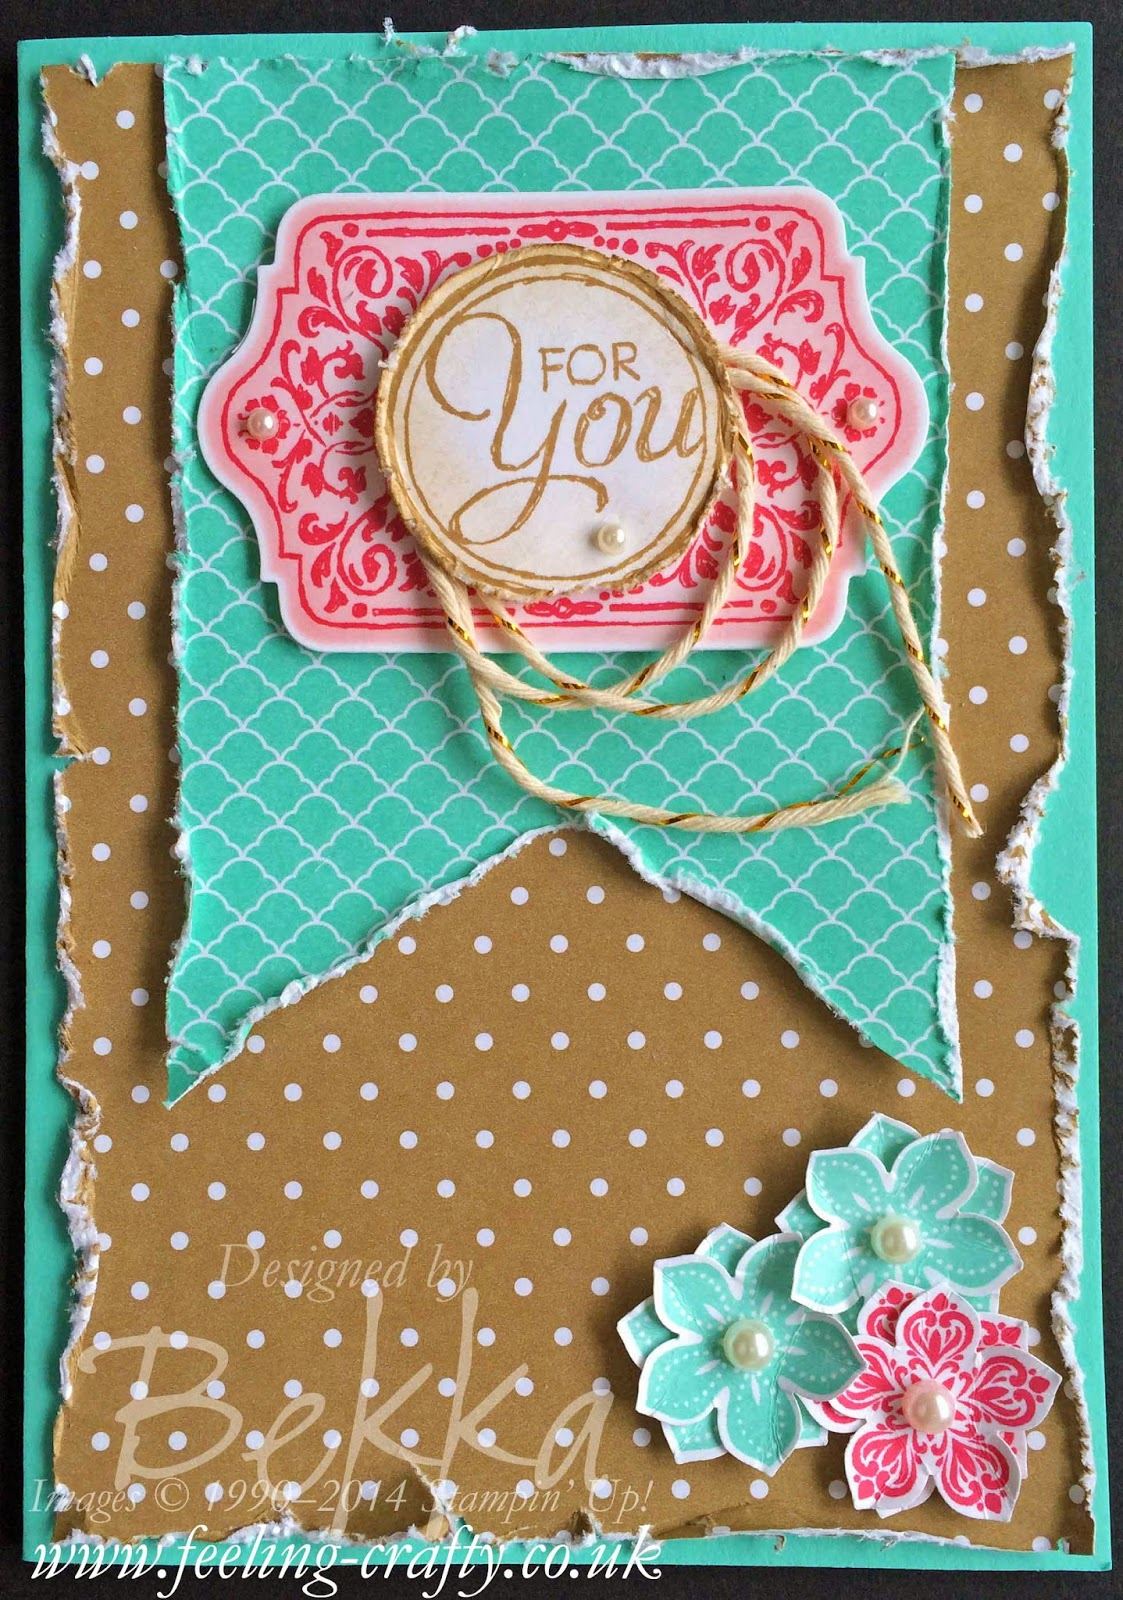 Just for you card made at a Stampin' Up! Party with UK Independent Demonstrator Bekka